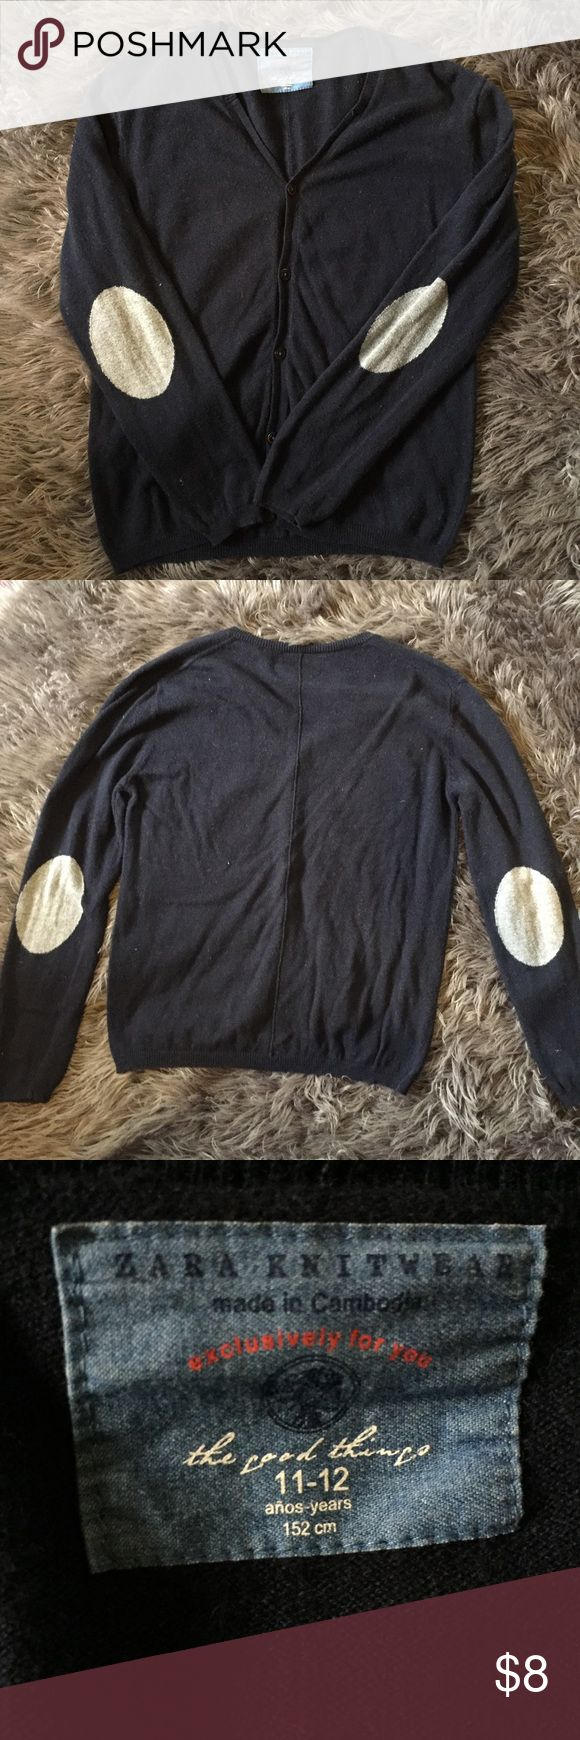 """Navy Blue Zara Cardigan w/ grey elbow pads Adorable sweater. Could be boy or girl in my opinion! Slightly """"fuzzy"""" just needs a good brush. Zara Shirts & Tops Sweaters"""